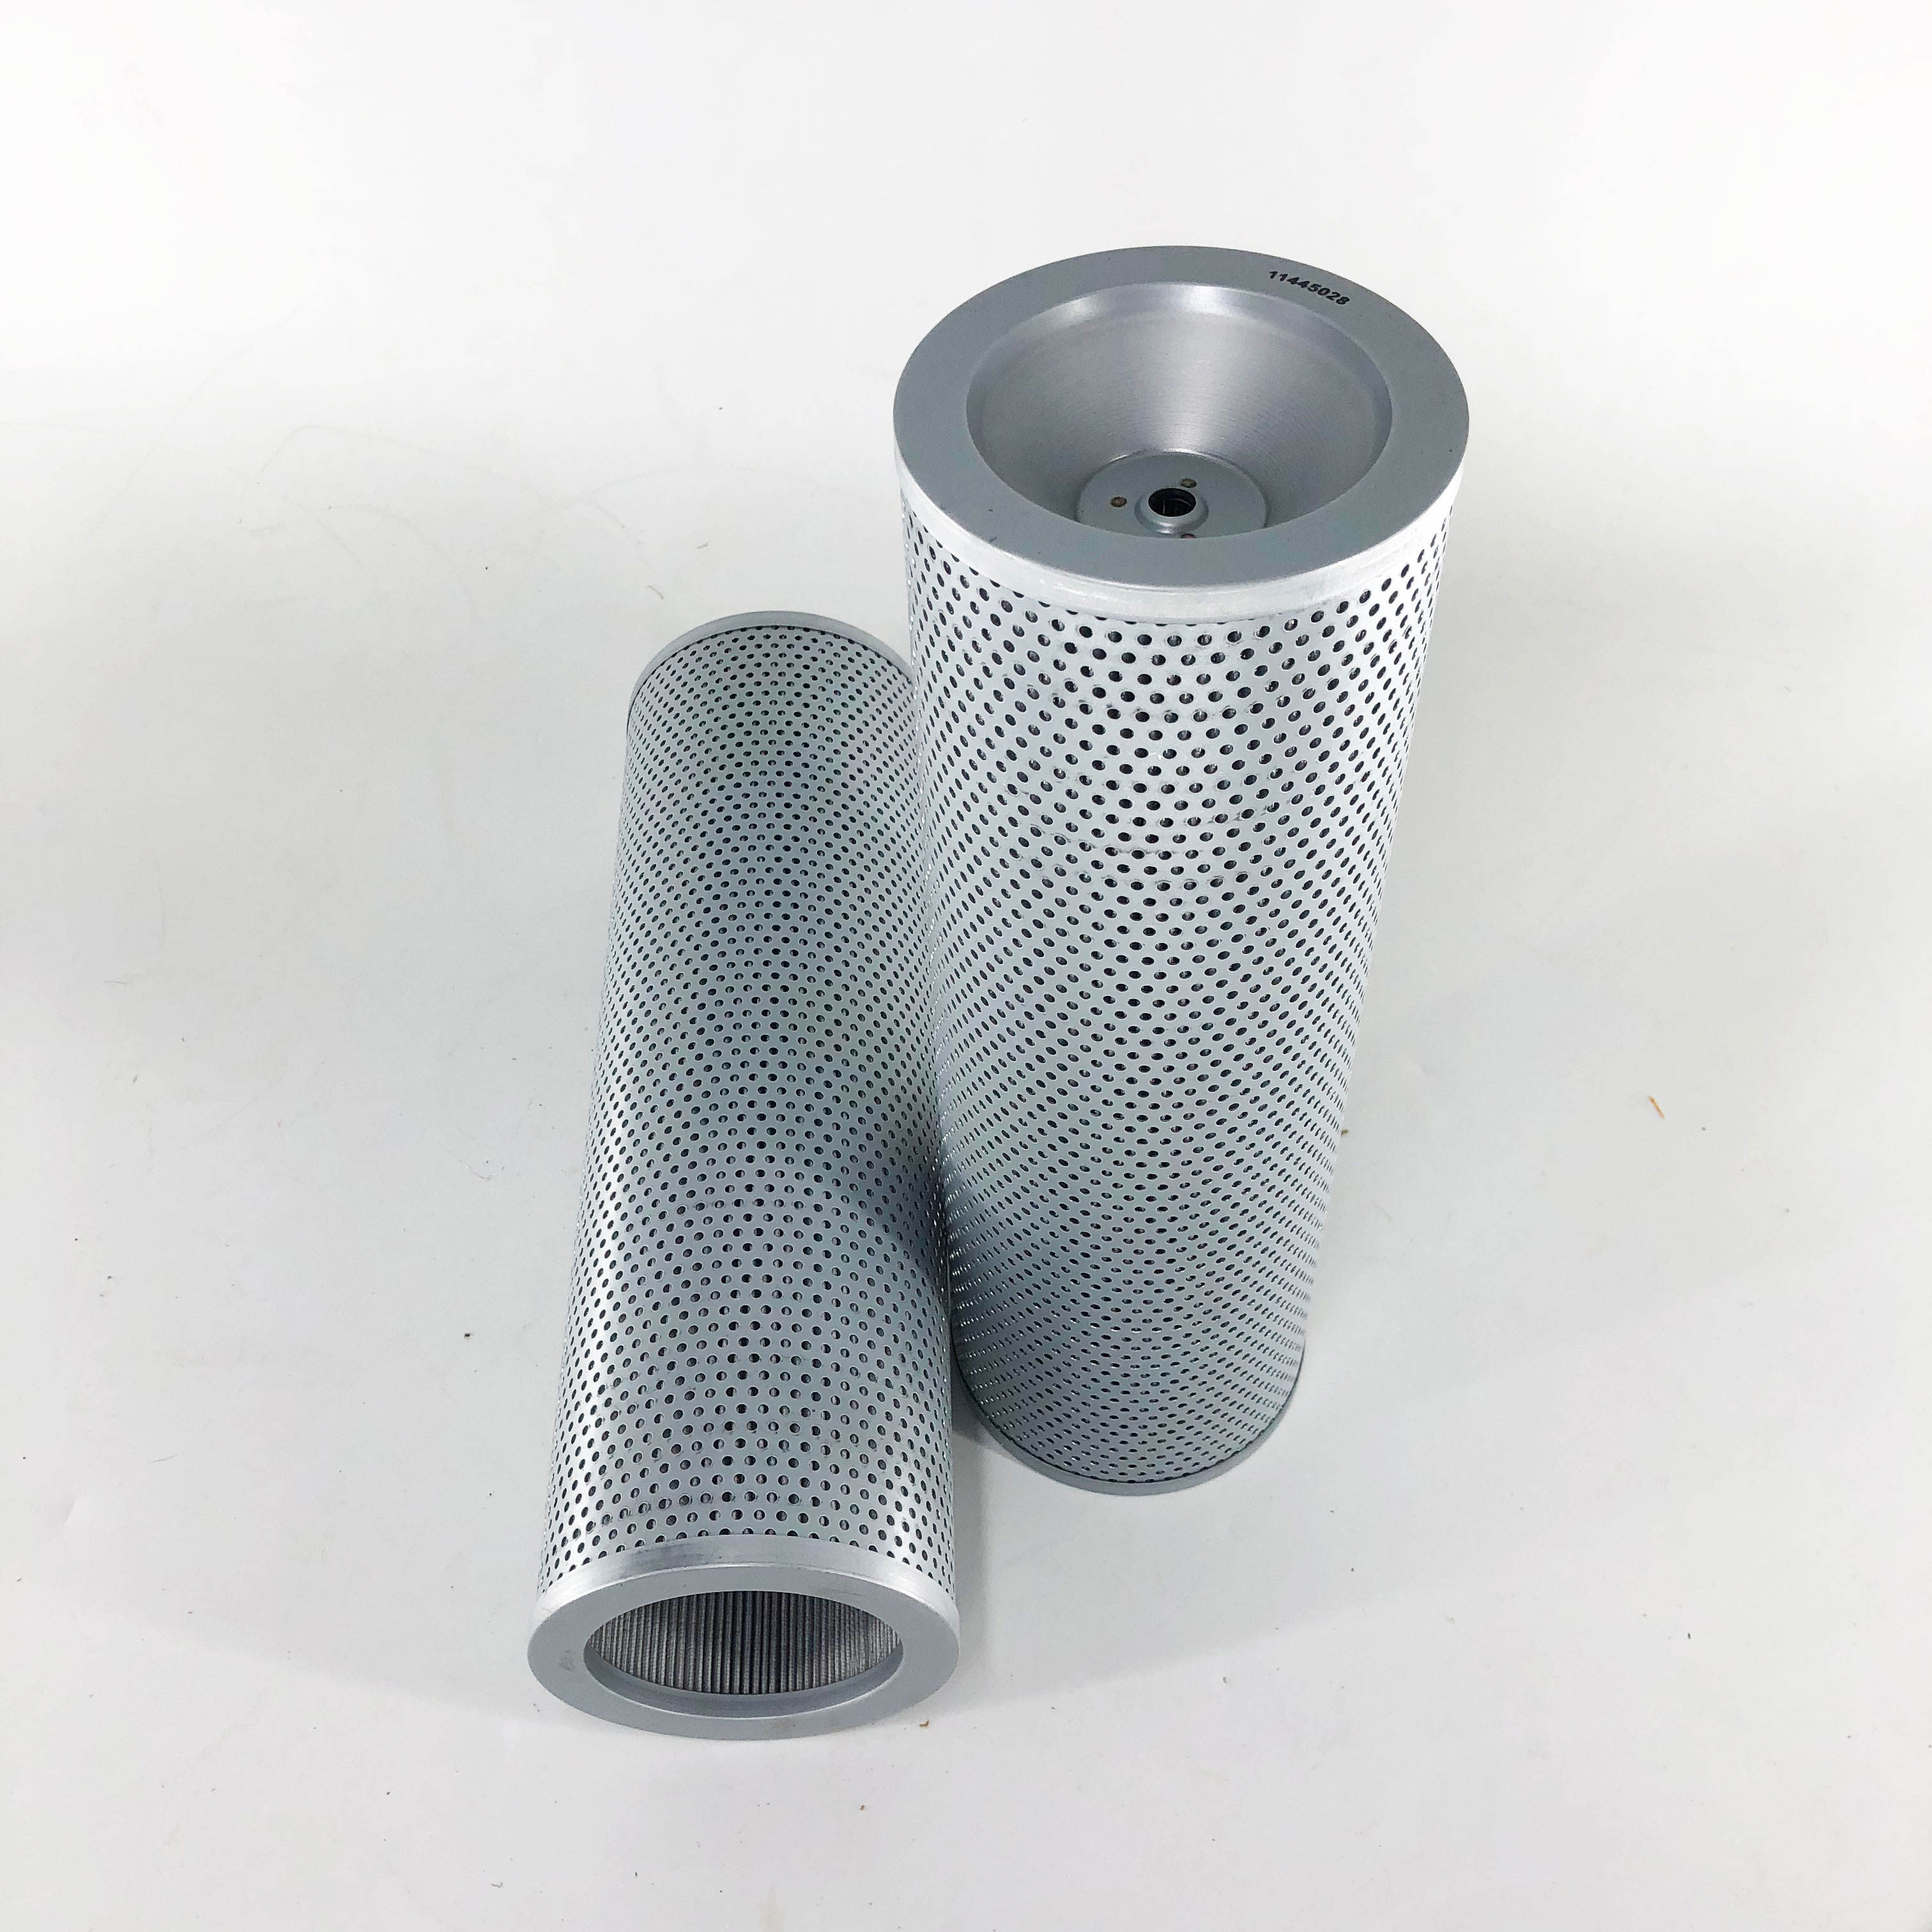 hydaculic oil filter element 11445028 FILTER